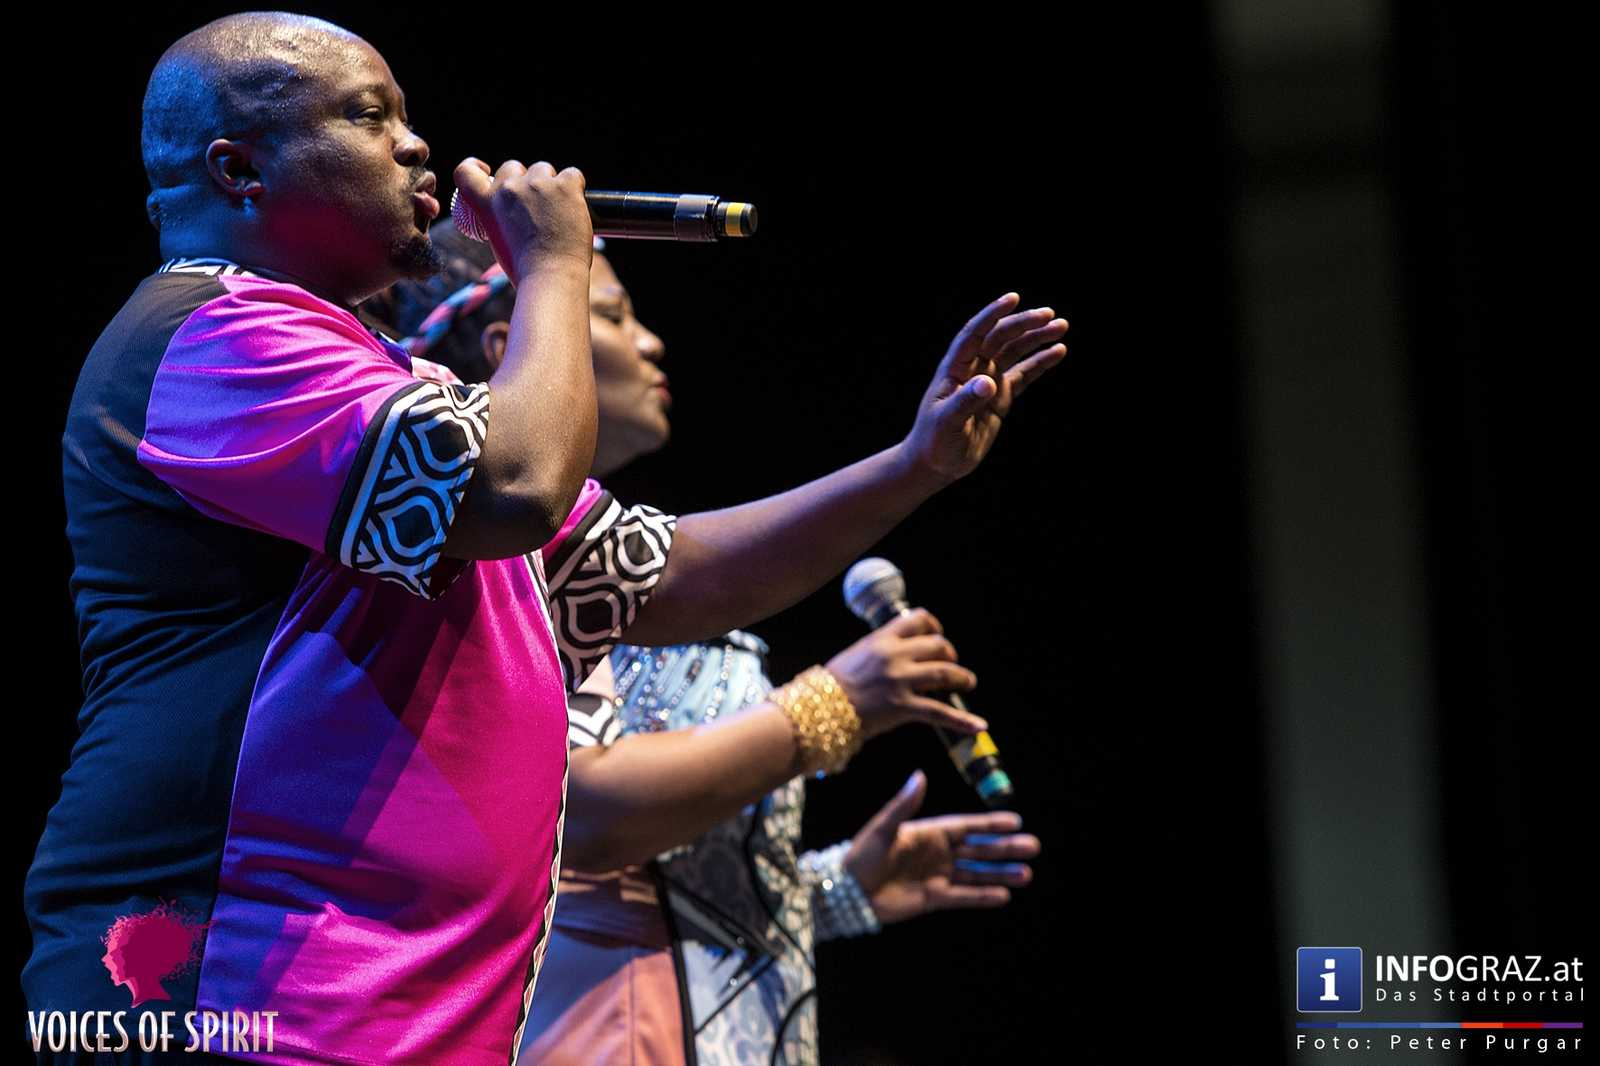 soweto gospel choir internationales chorfestival statdthalle graz voices of spirit eroeffnung festivals 2016 129